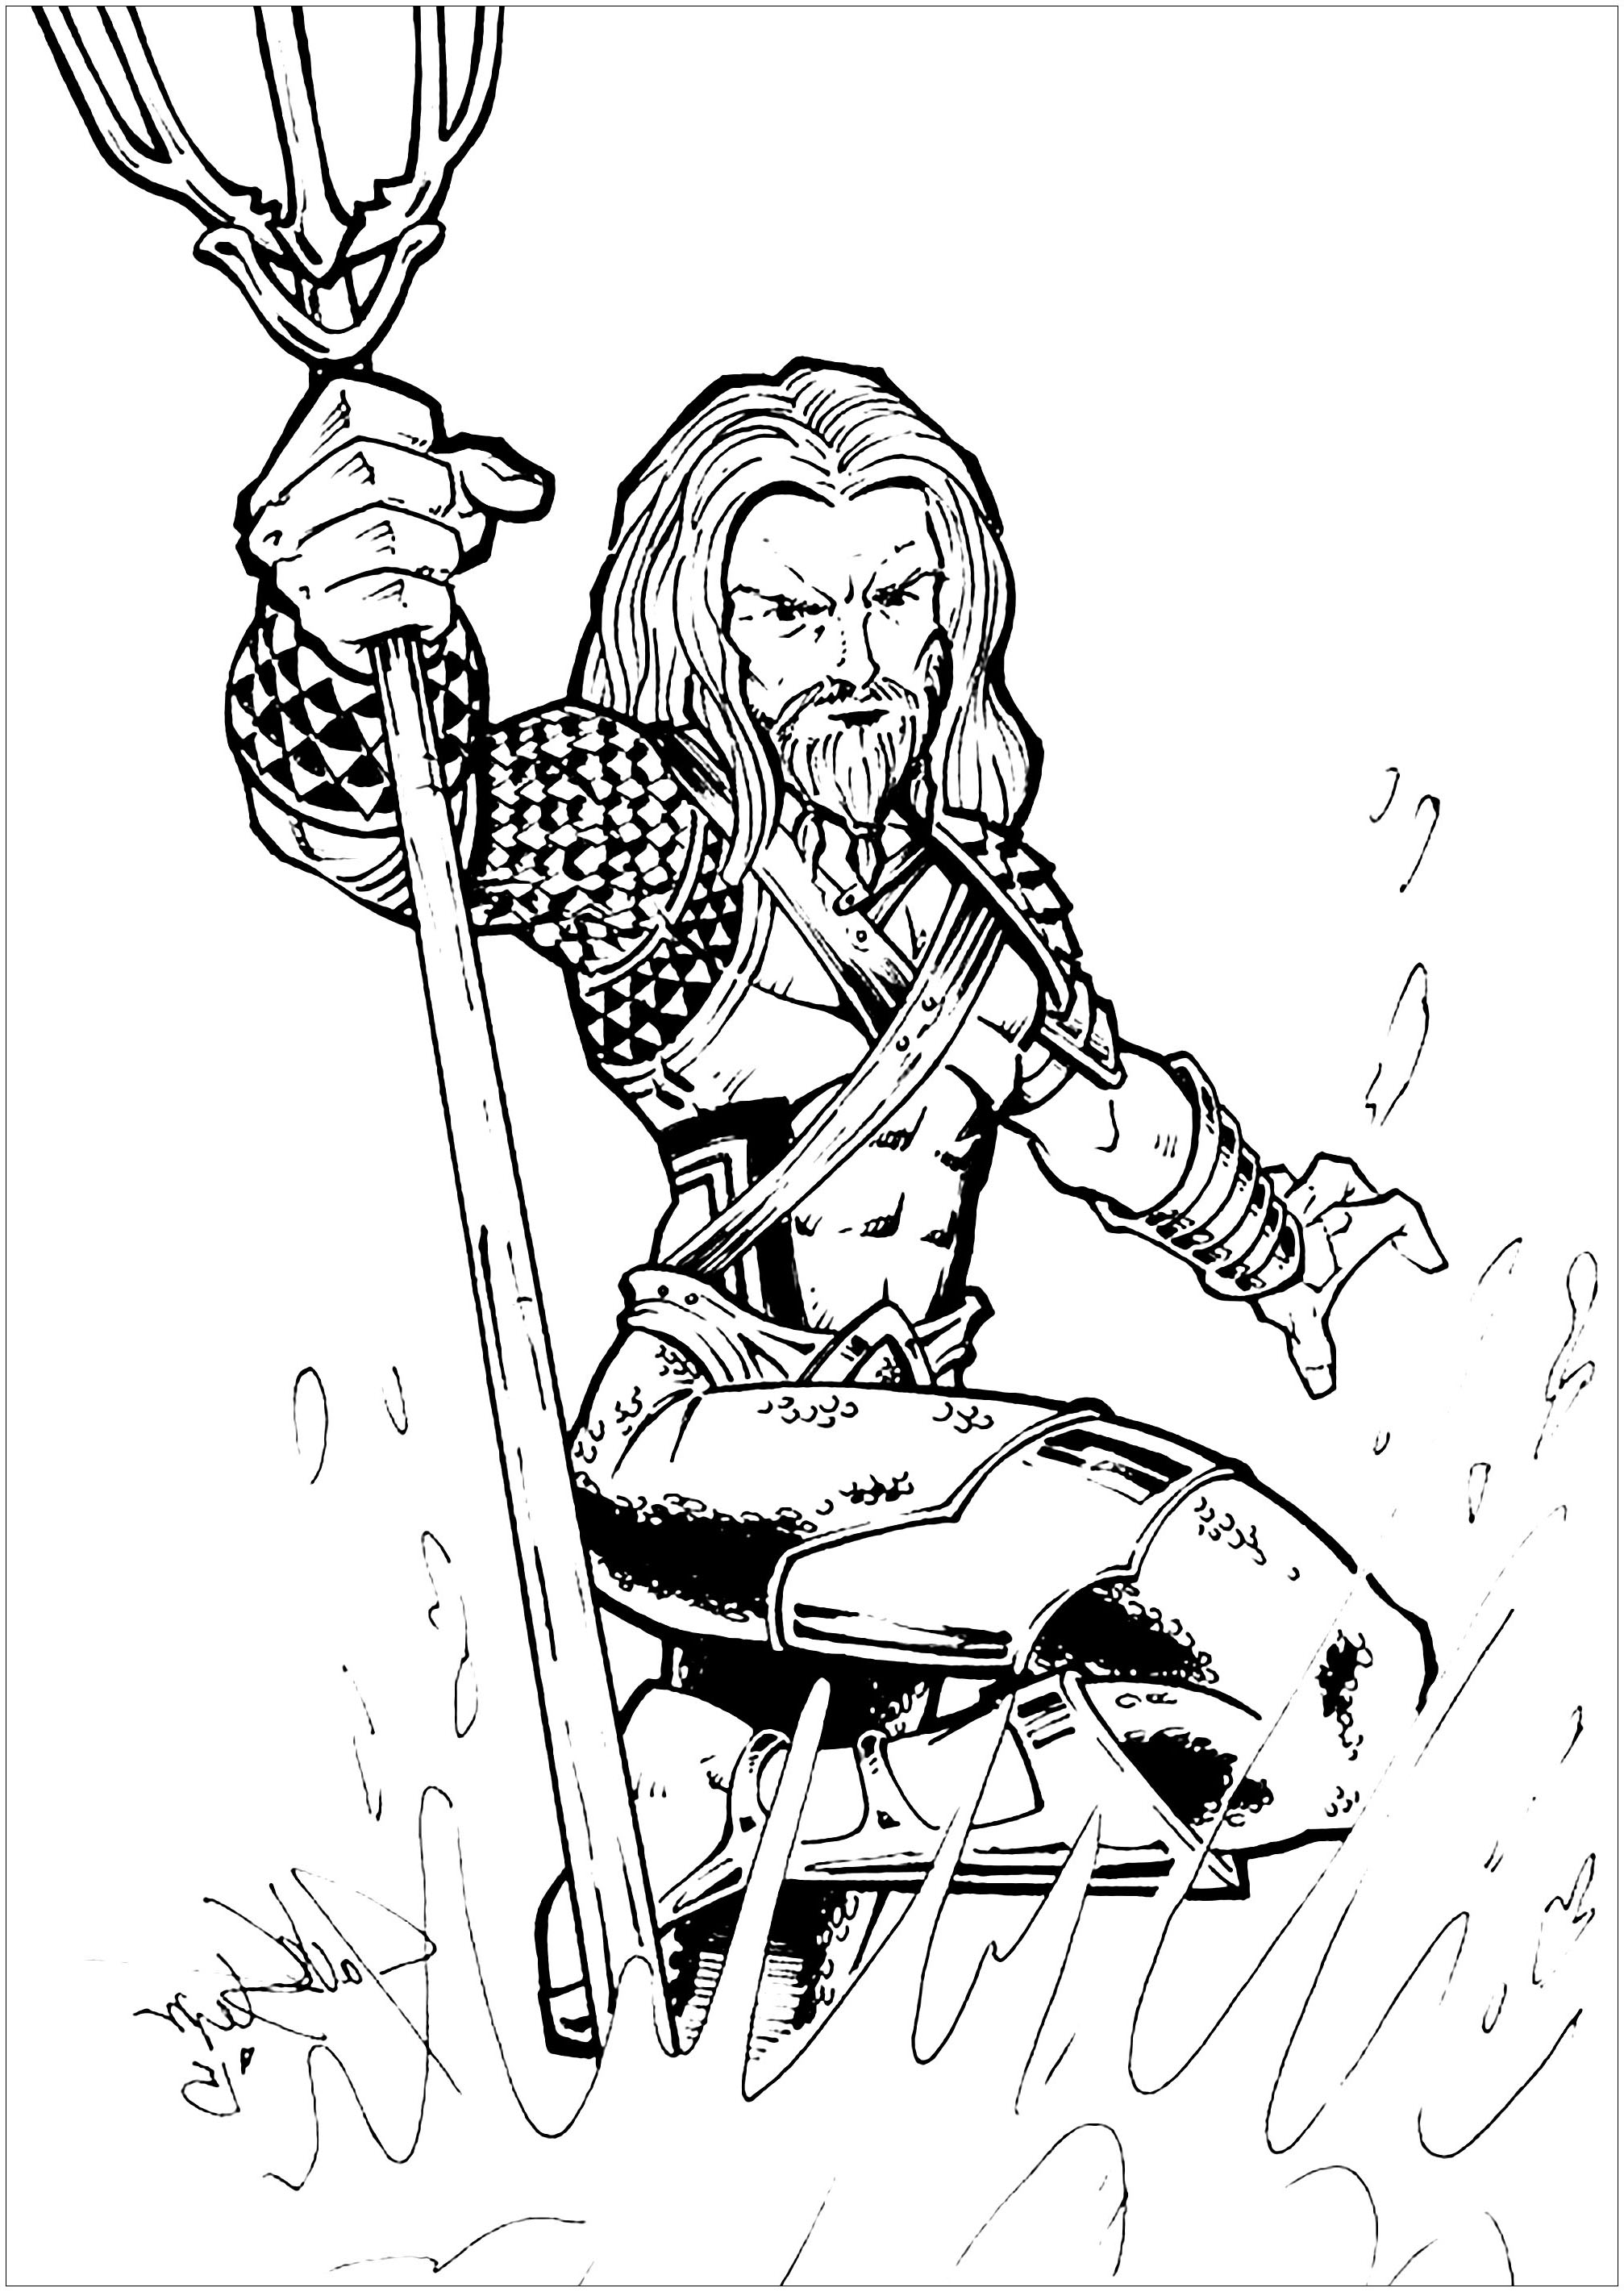 Free Aquaman coloring page to print and color